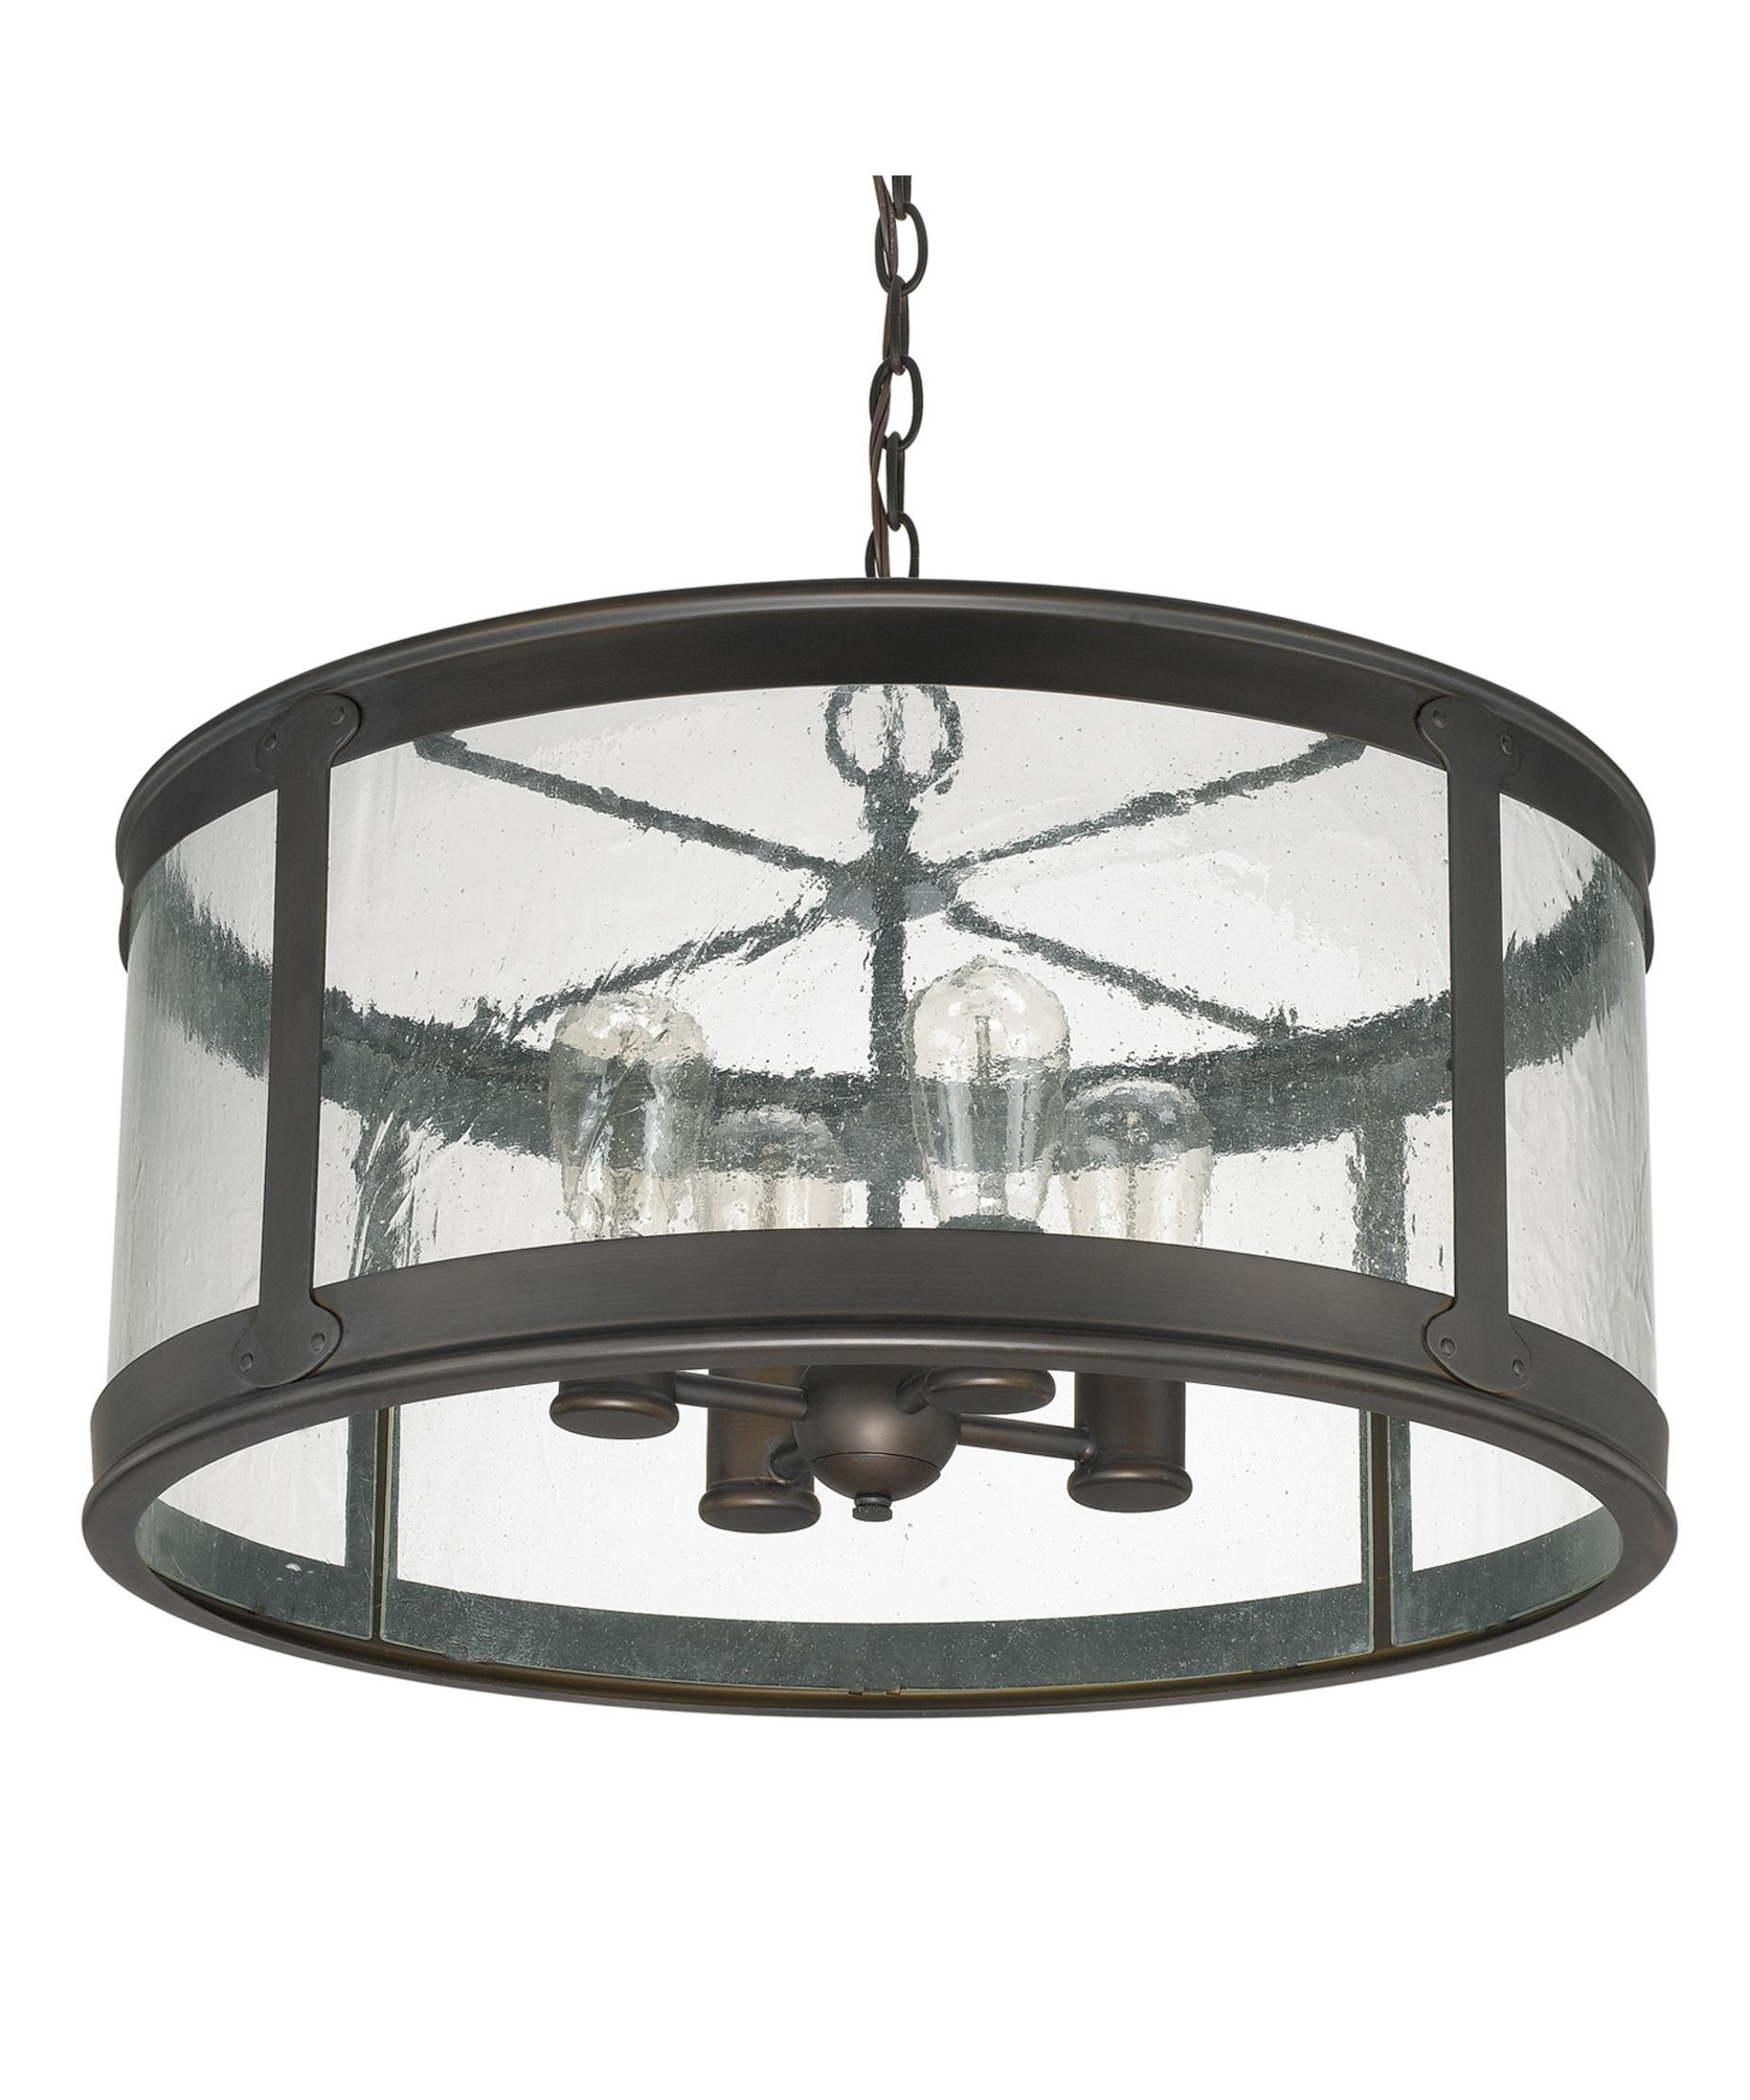 Large Outdoor Ceiling Lights For Recent Capital Lighting 9568 Dylan 22 Inch Wide 4 Light Large Pendant (View 5 of 20)